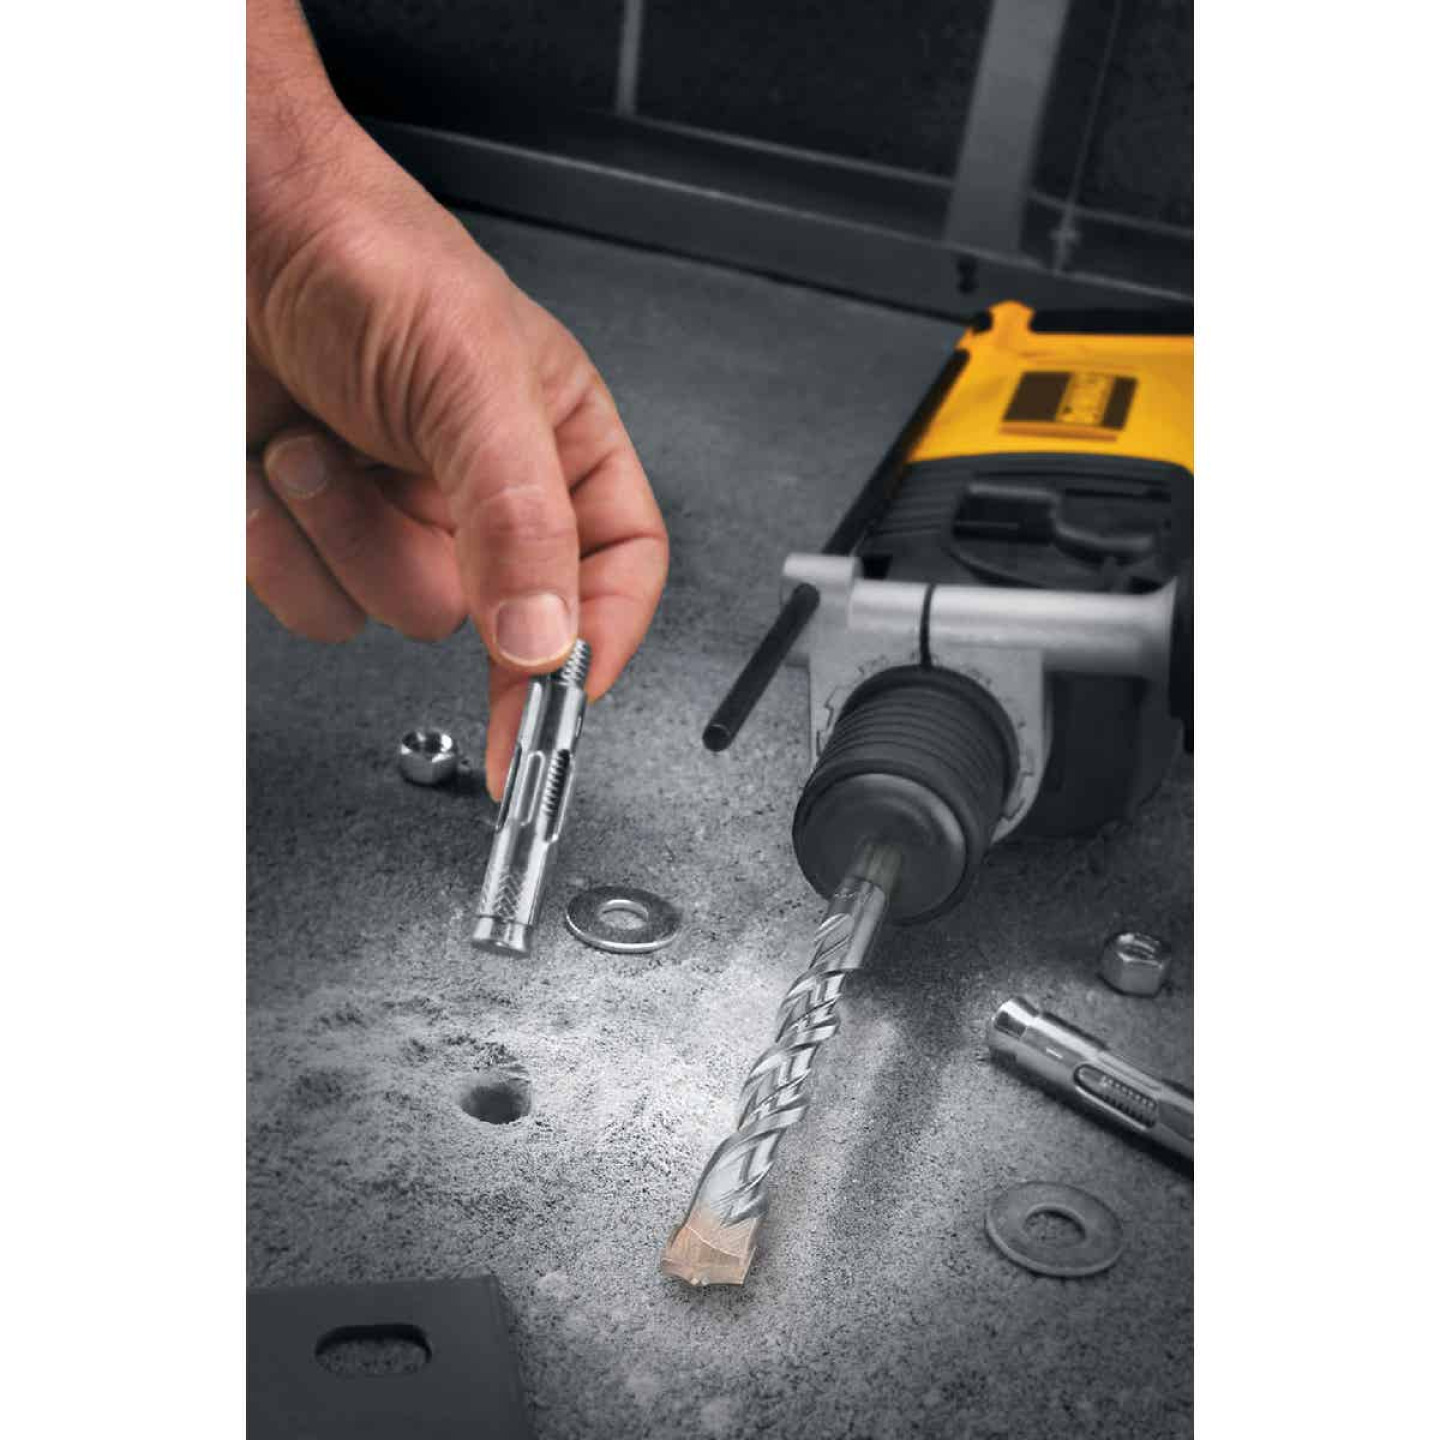 DeWalt SDS-Plus 1/2 In. x 6 In. 2-Cutter Rotary Hammer Drill Bit Image 4